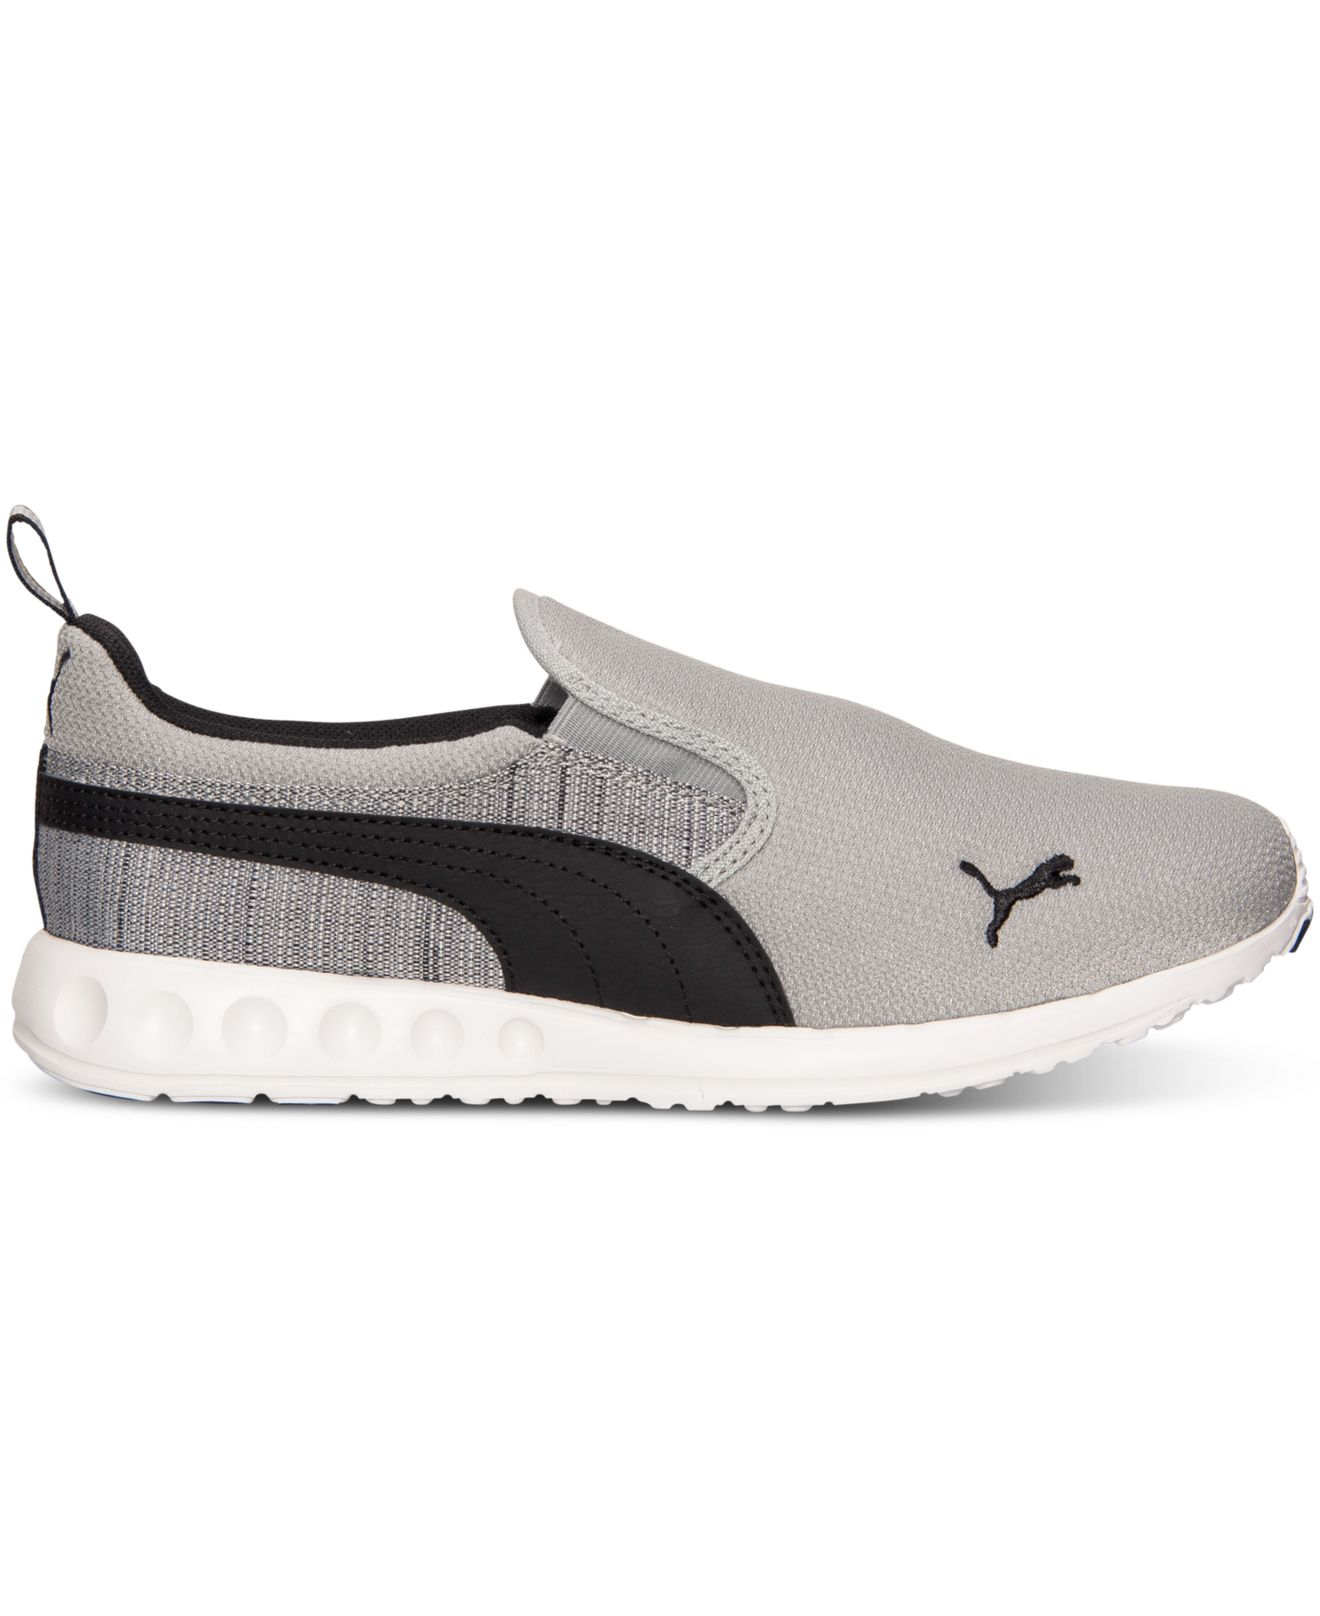 Puma Mens Carson Runner Slip on Casual Sneakers From